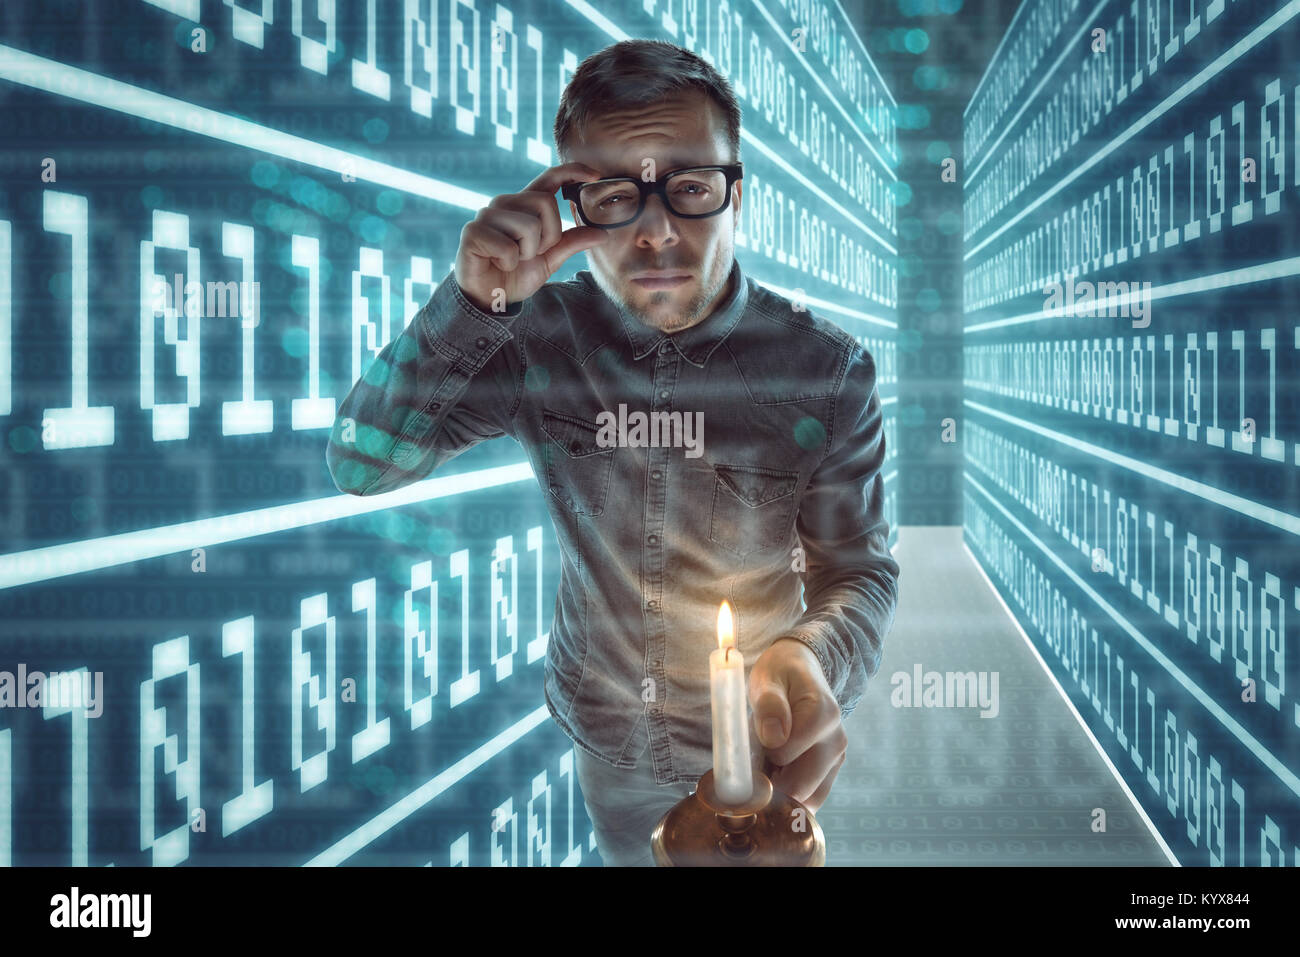 Nerd gets lost in cyberspace - Stock Image